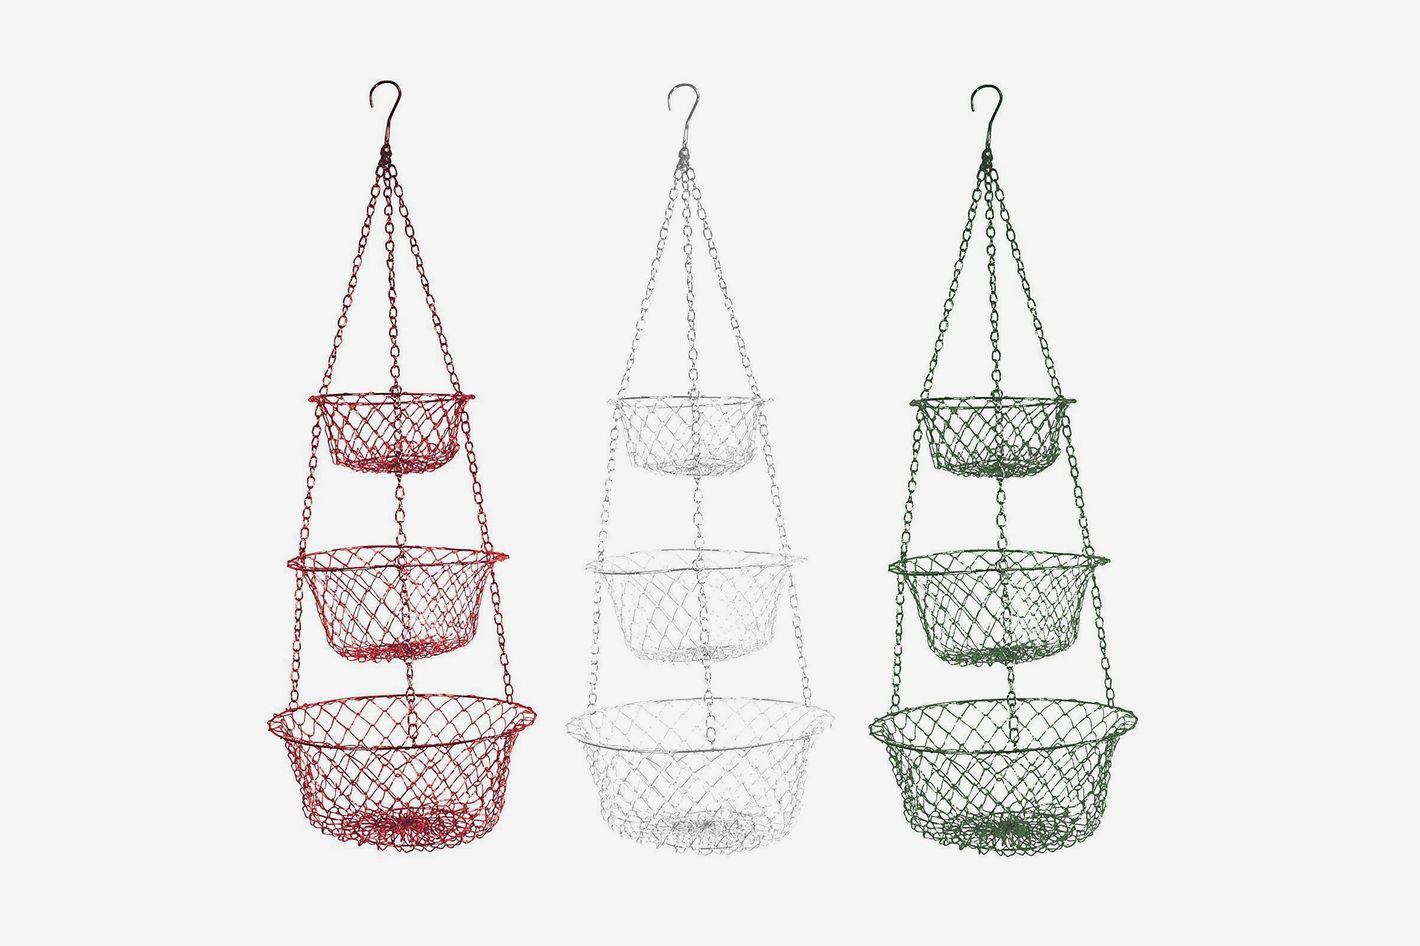 Fox Run 3 Tier Hanging Baskets